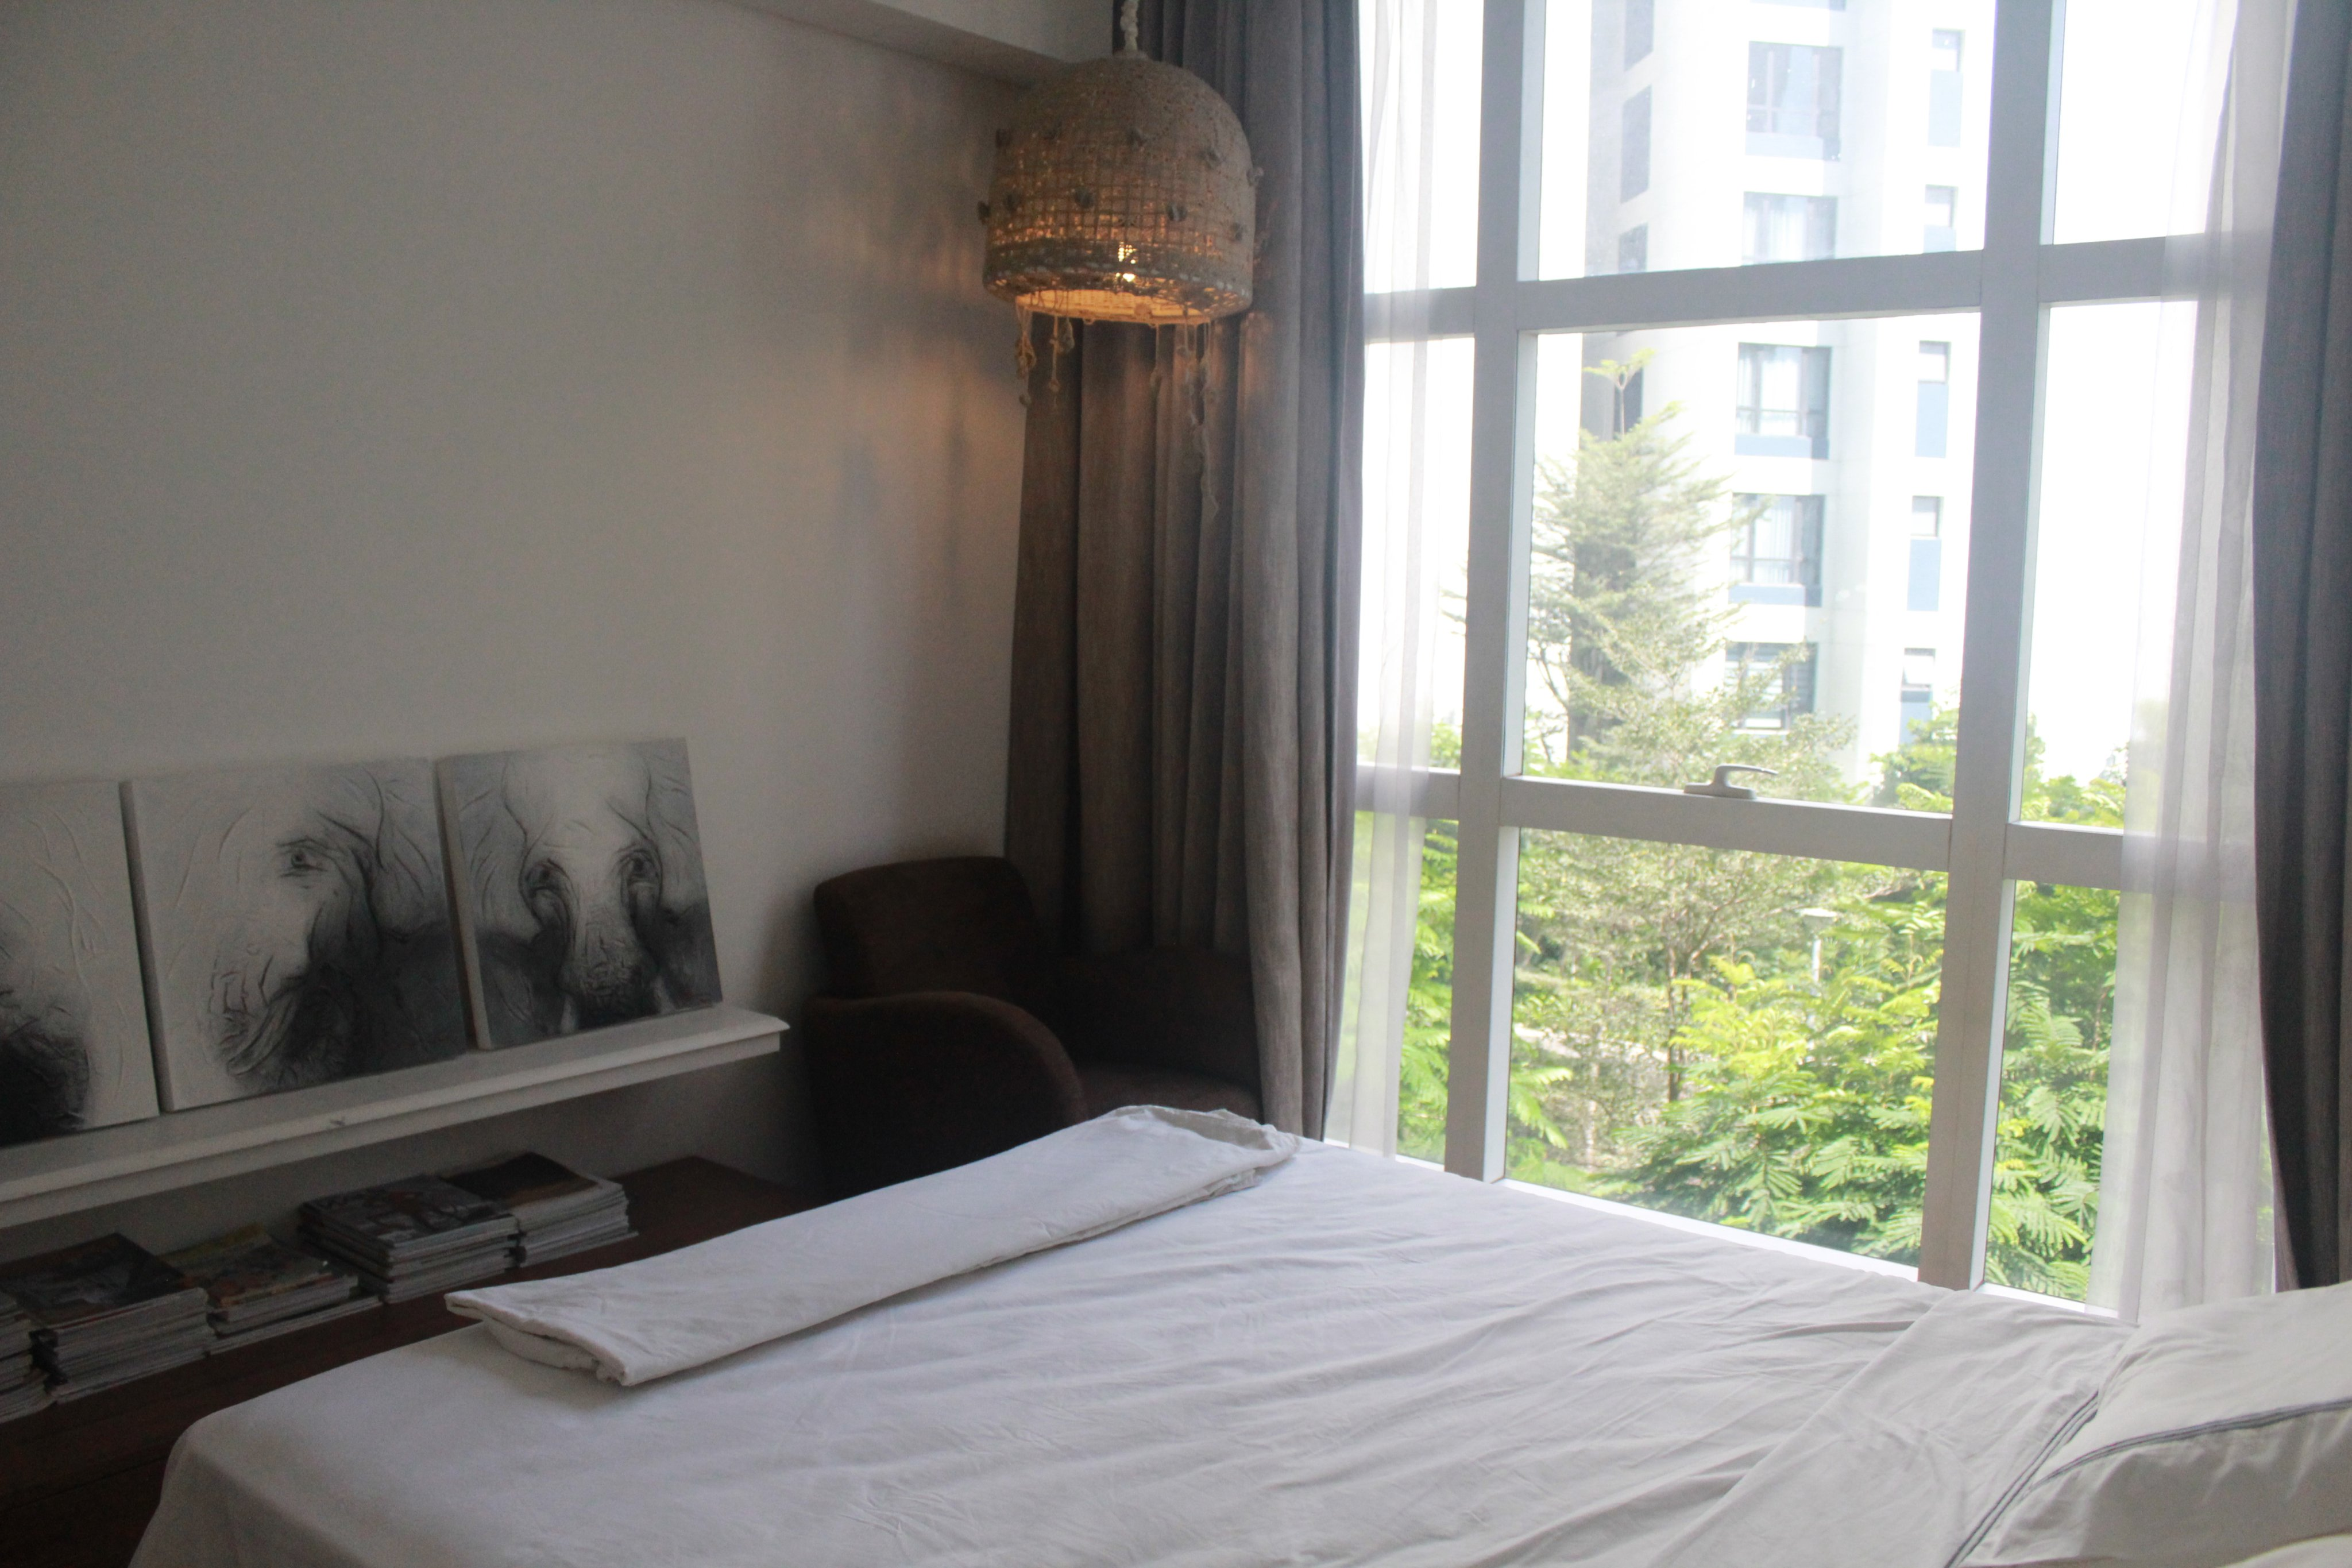 saigon pearl apartment for rent in binh thanh district hcmc D201237(12)